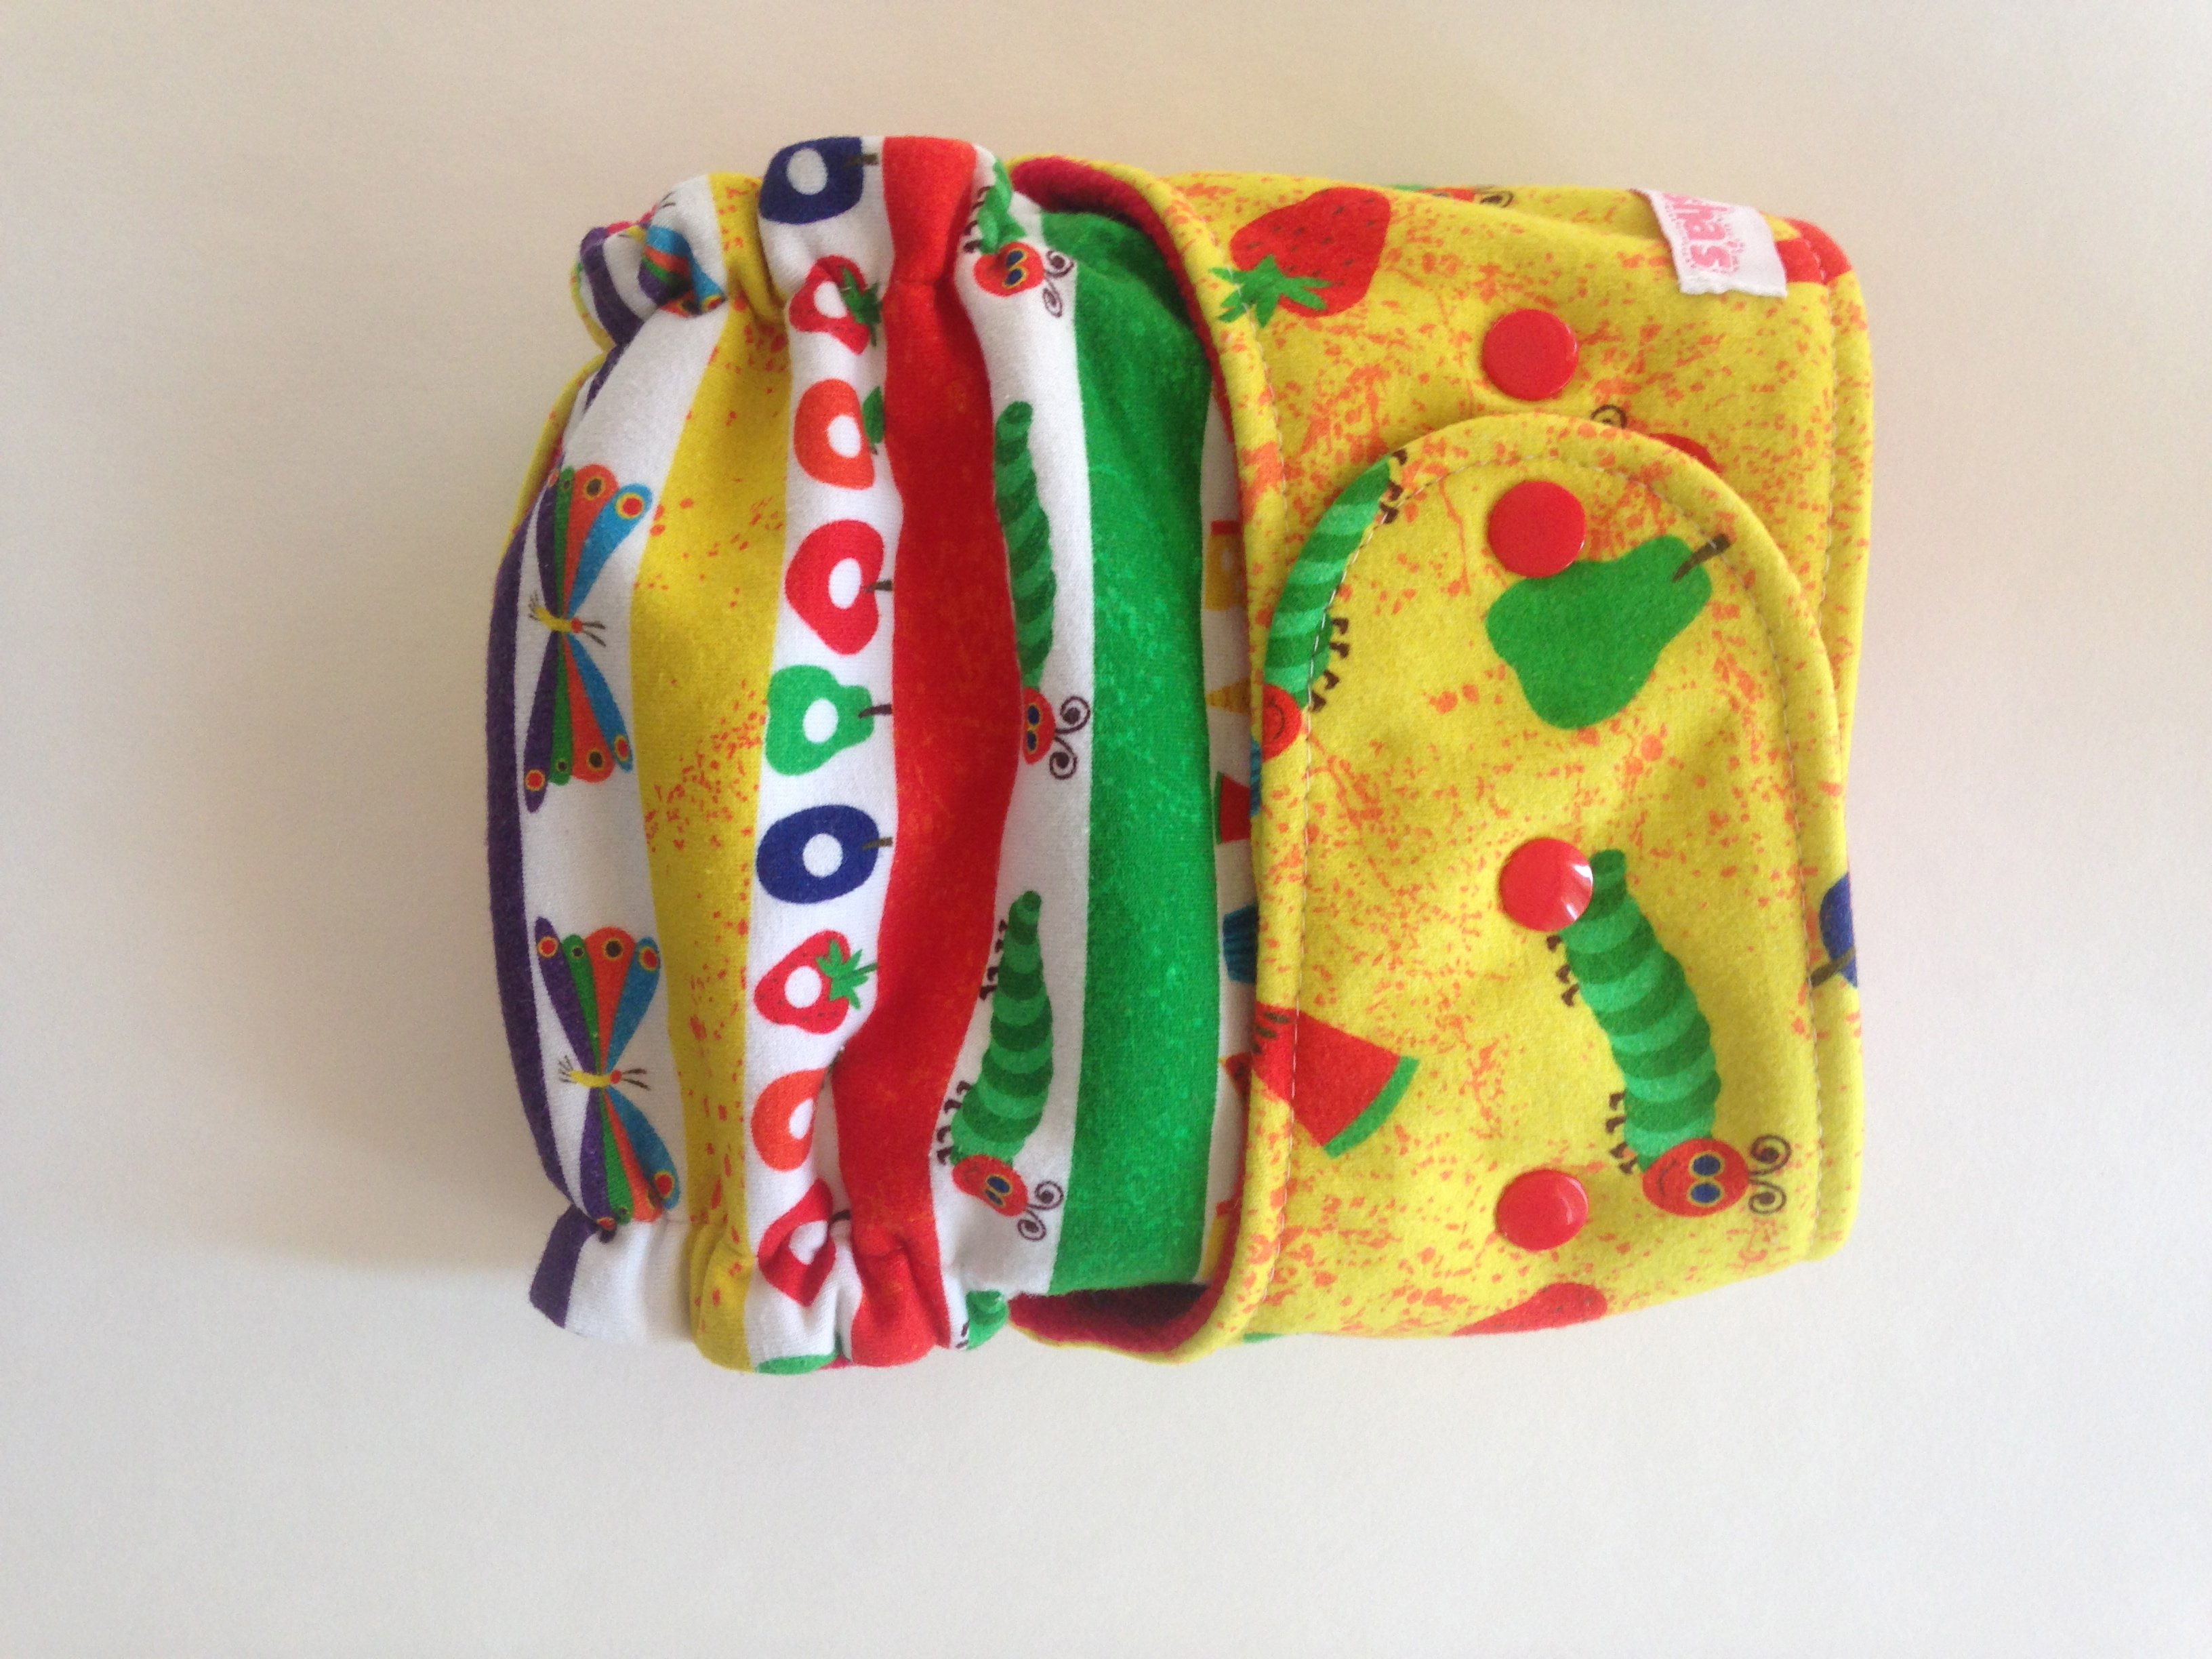 Toosha's - Hungry Caterpillar $25